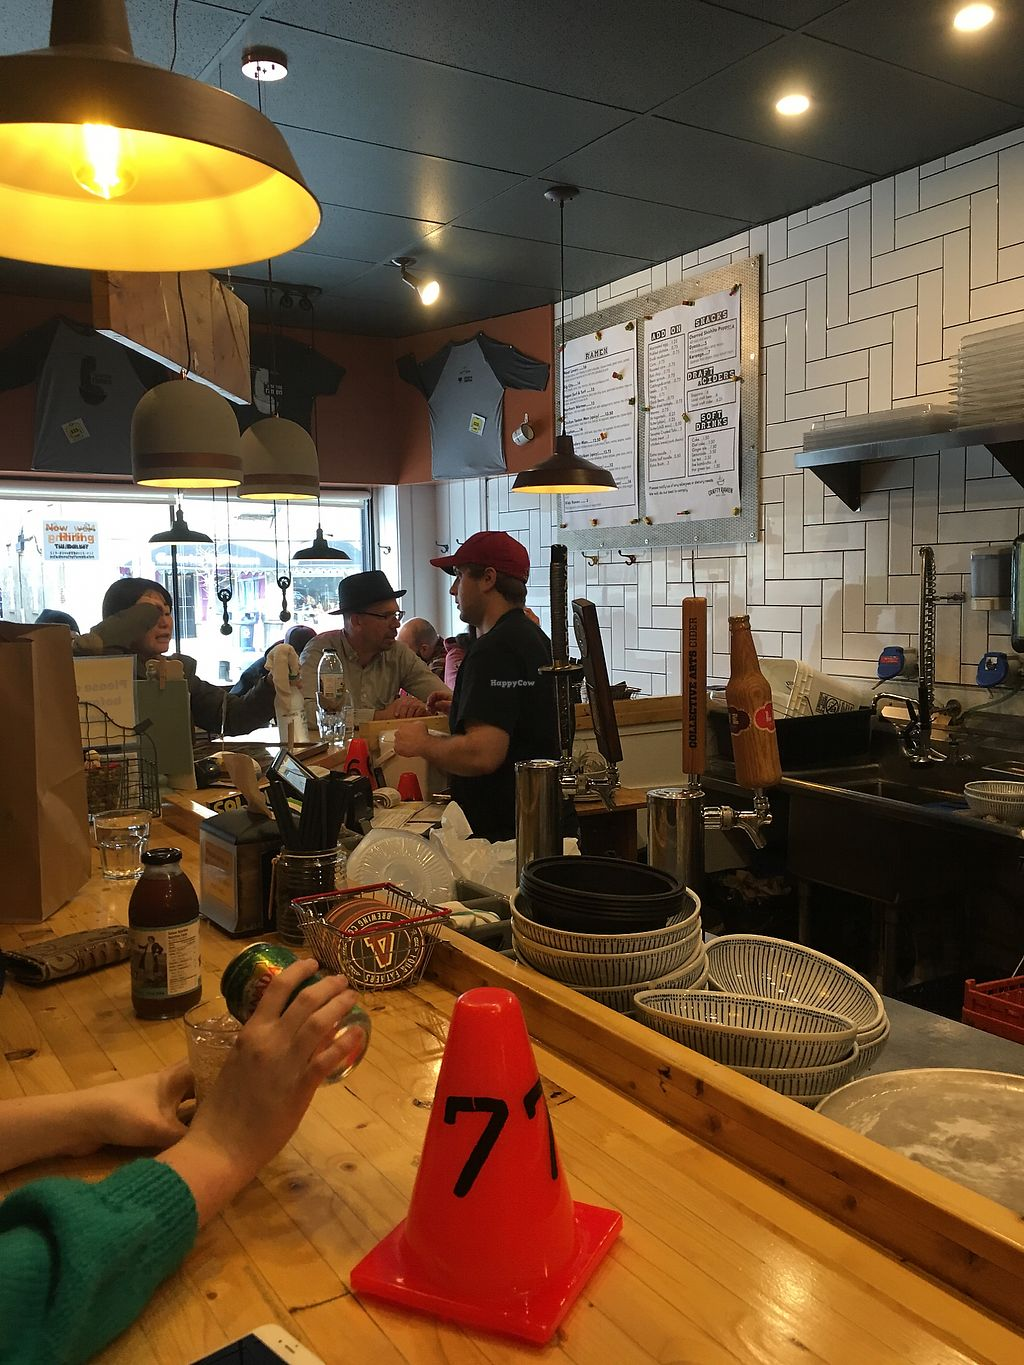 """Photo of Crafty Ramen  by <a href=""""/members/profile/Cat_Mamma"""">Cat_Mamma</a> <br/>They have """"bar seating"""" and some other spots around the exterior <br/> November 24, 2017  - <a href='/contact/abuse/image/101881/328830'>Report</a>"""